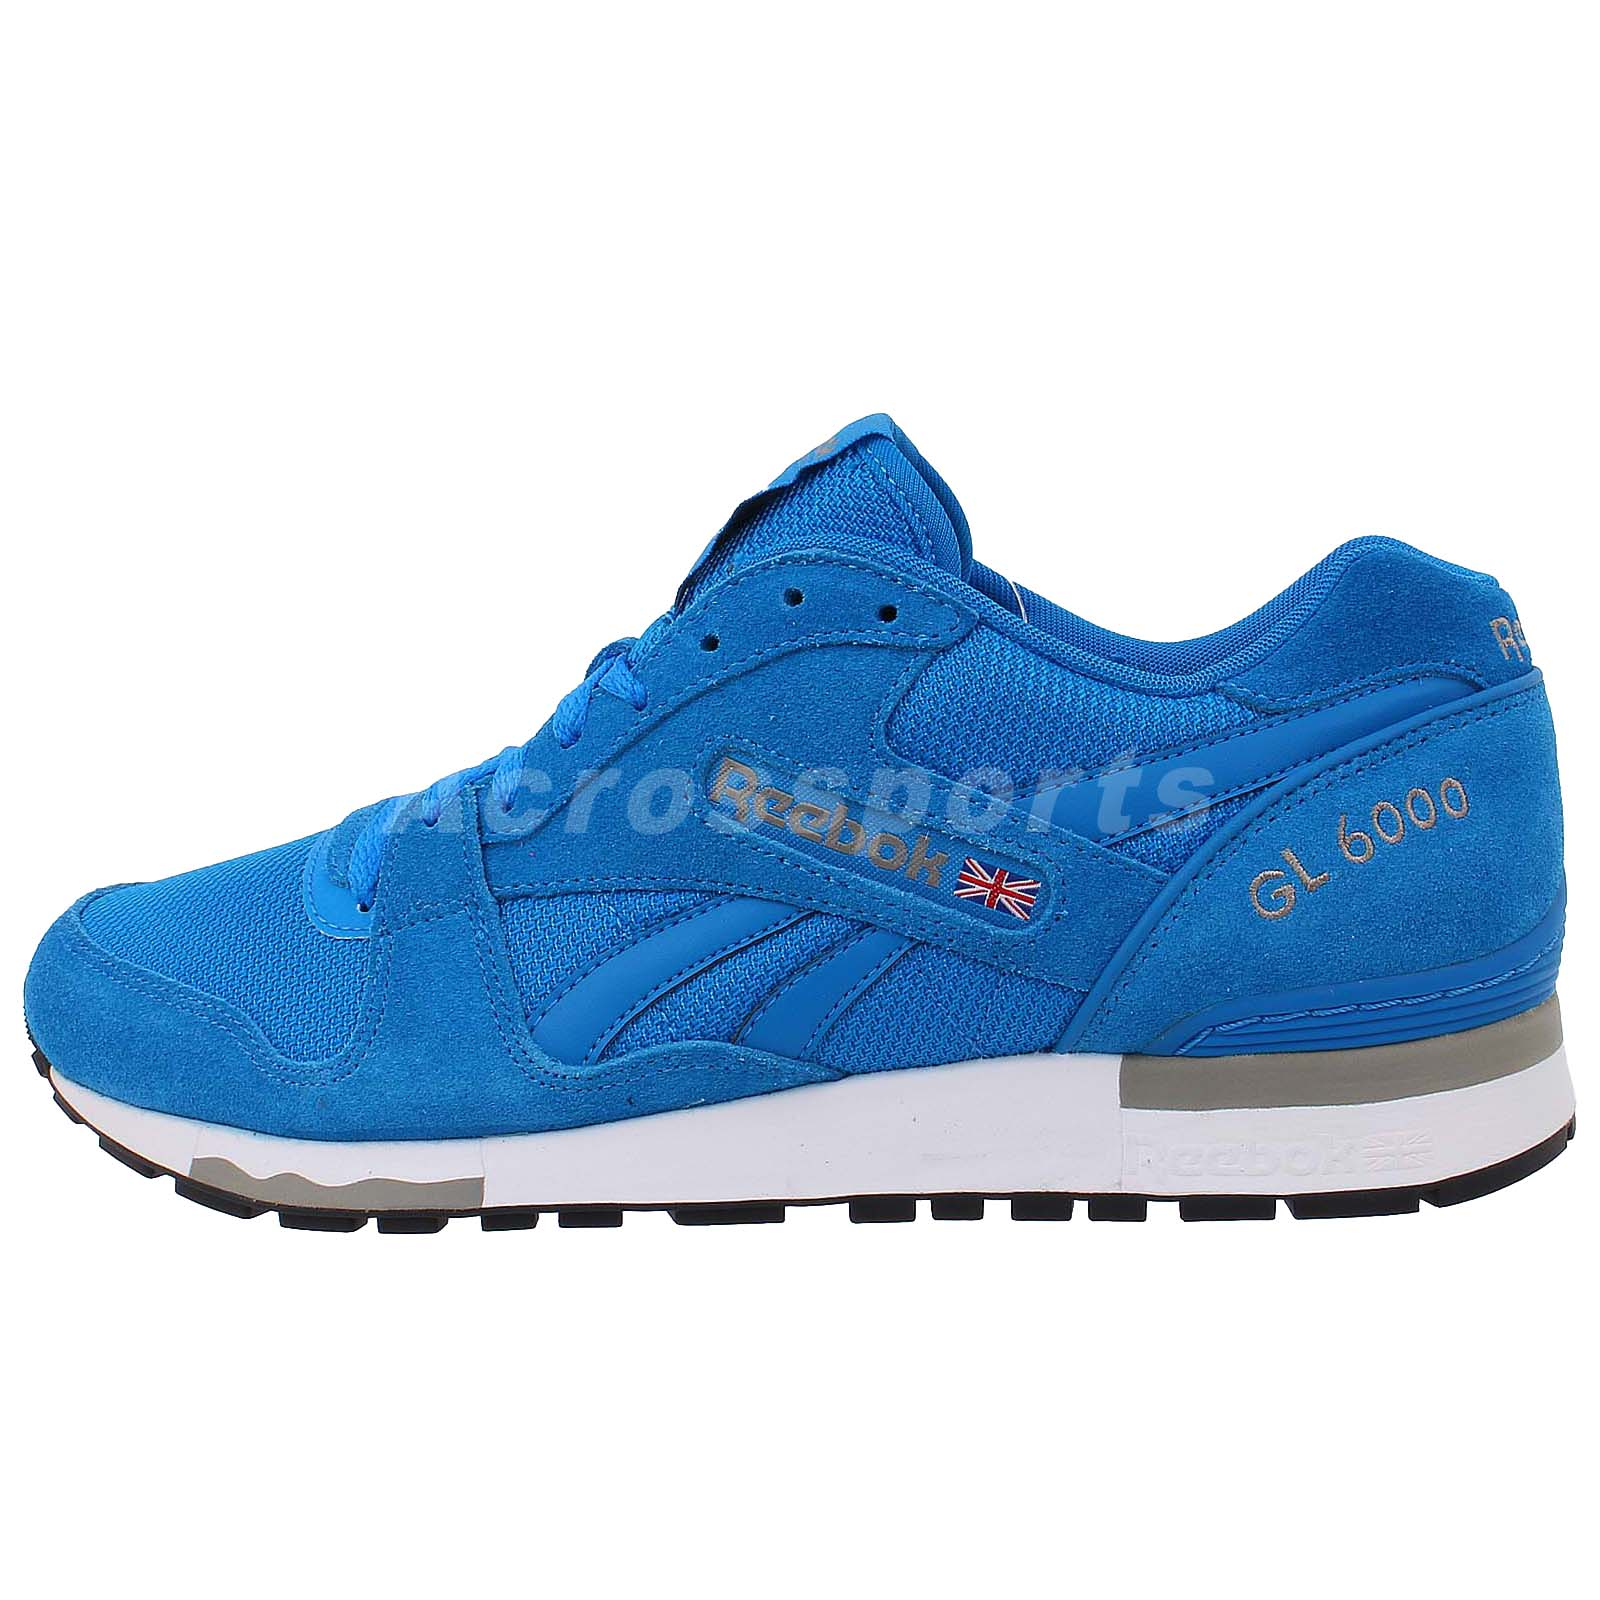 reebok gl 6000 suede 2013 retro mens running shoes casual